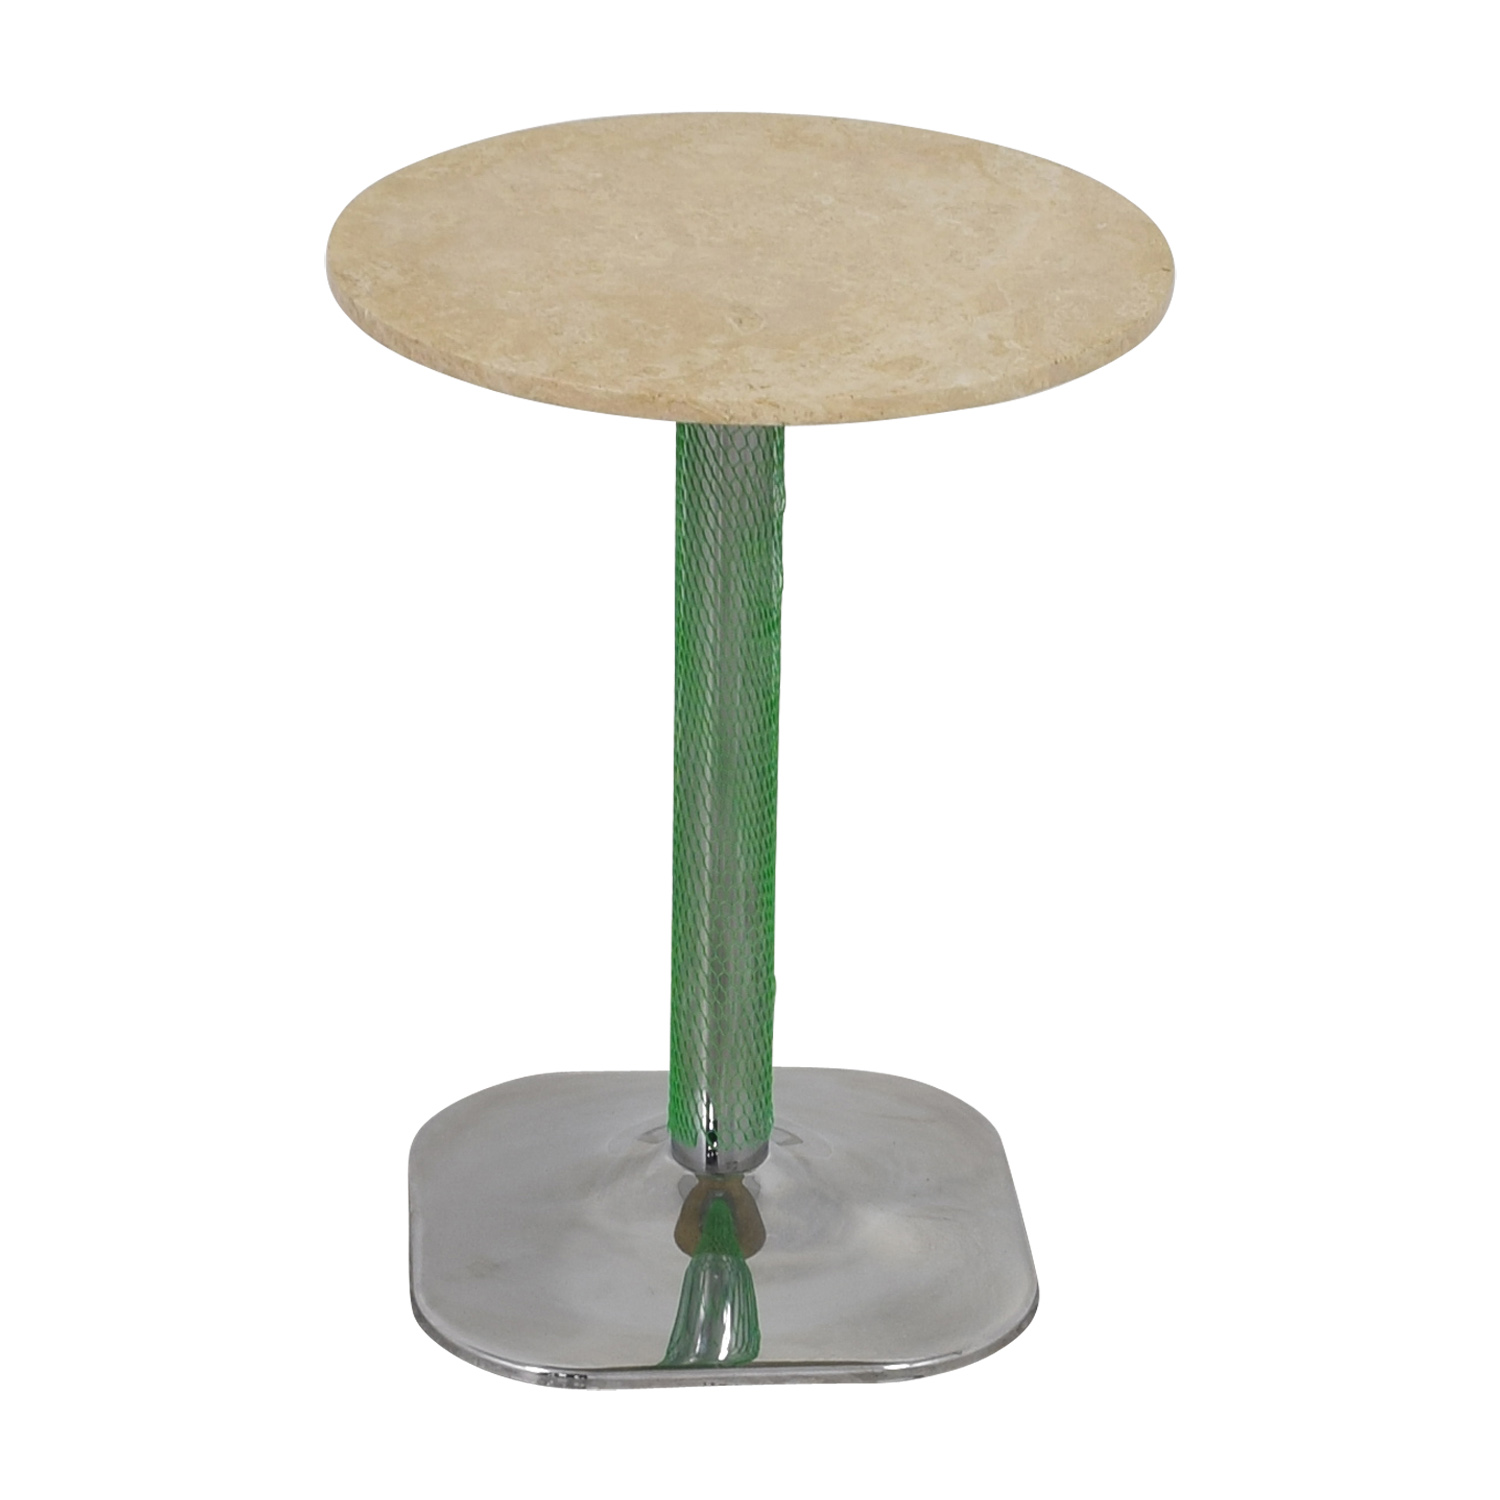 Lotus Lotus Cream Marble with Green Pedestal Table dimensions